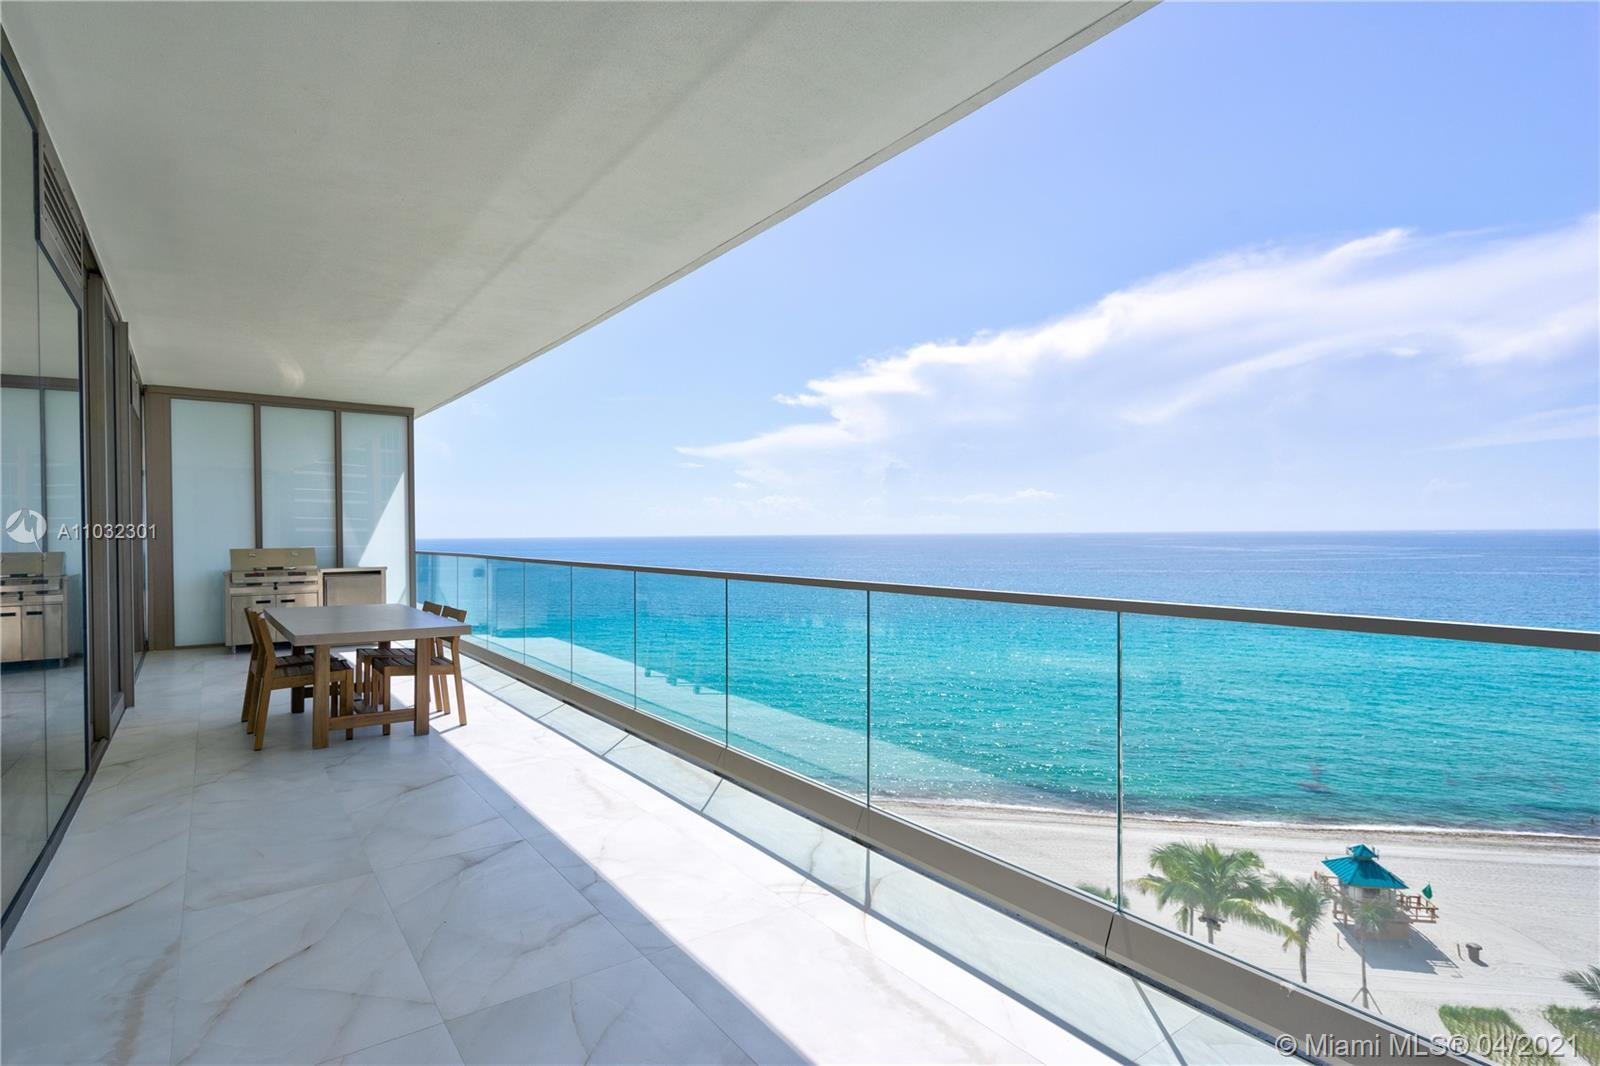 Newly completed exclusive & luxurious oceanfront residences by Armani Casa. Enjoy the stunning ocean